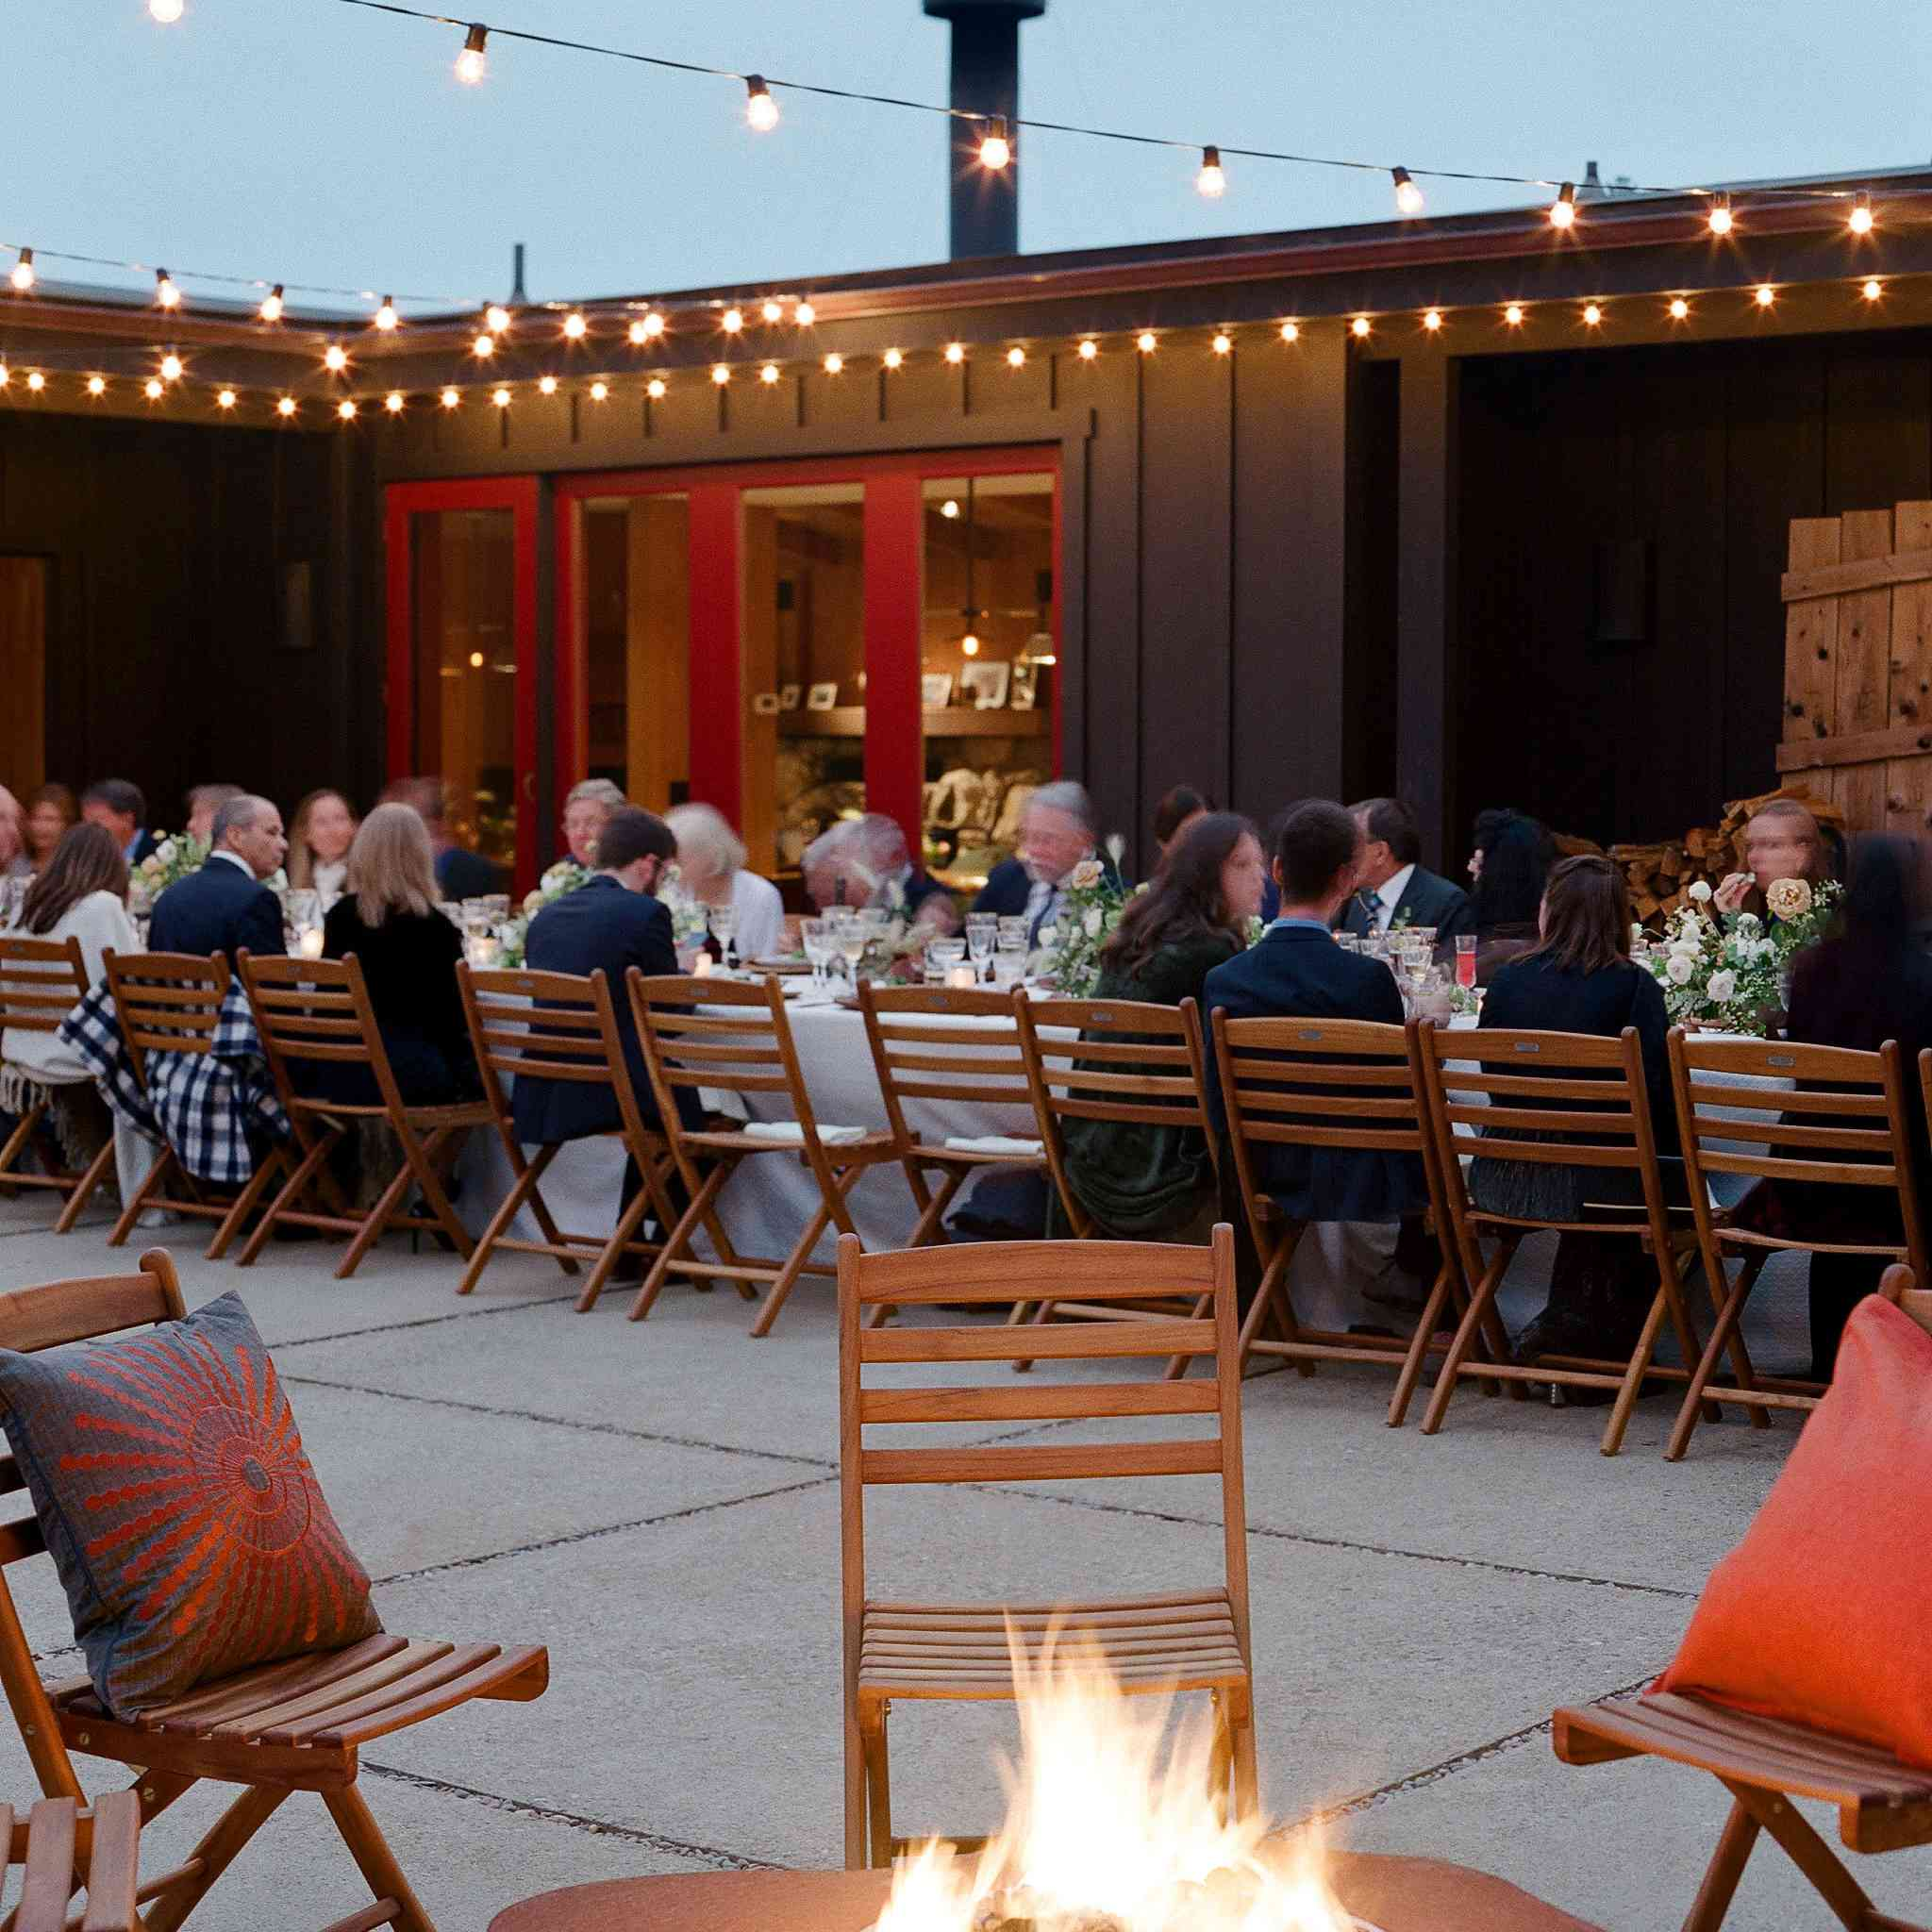 Fire pit at outdoor wedding reception